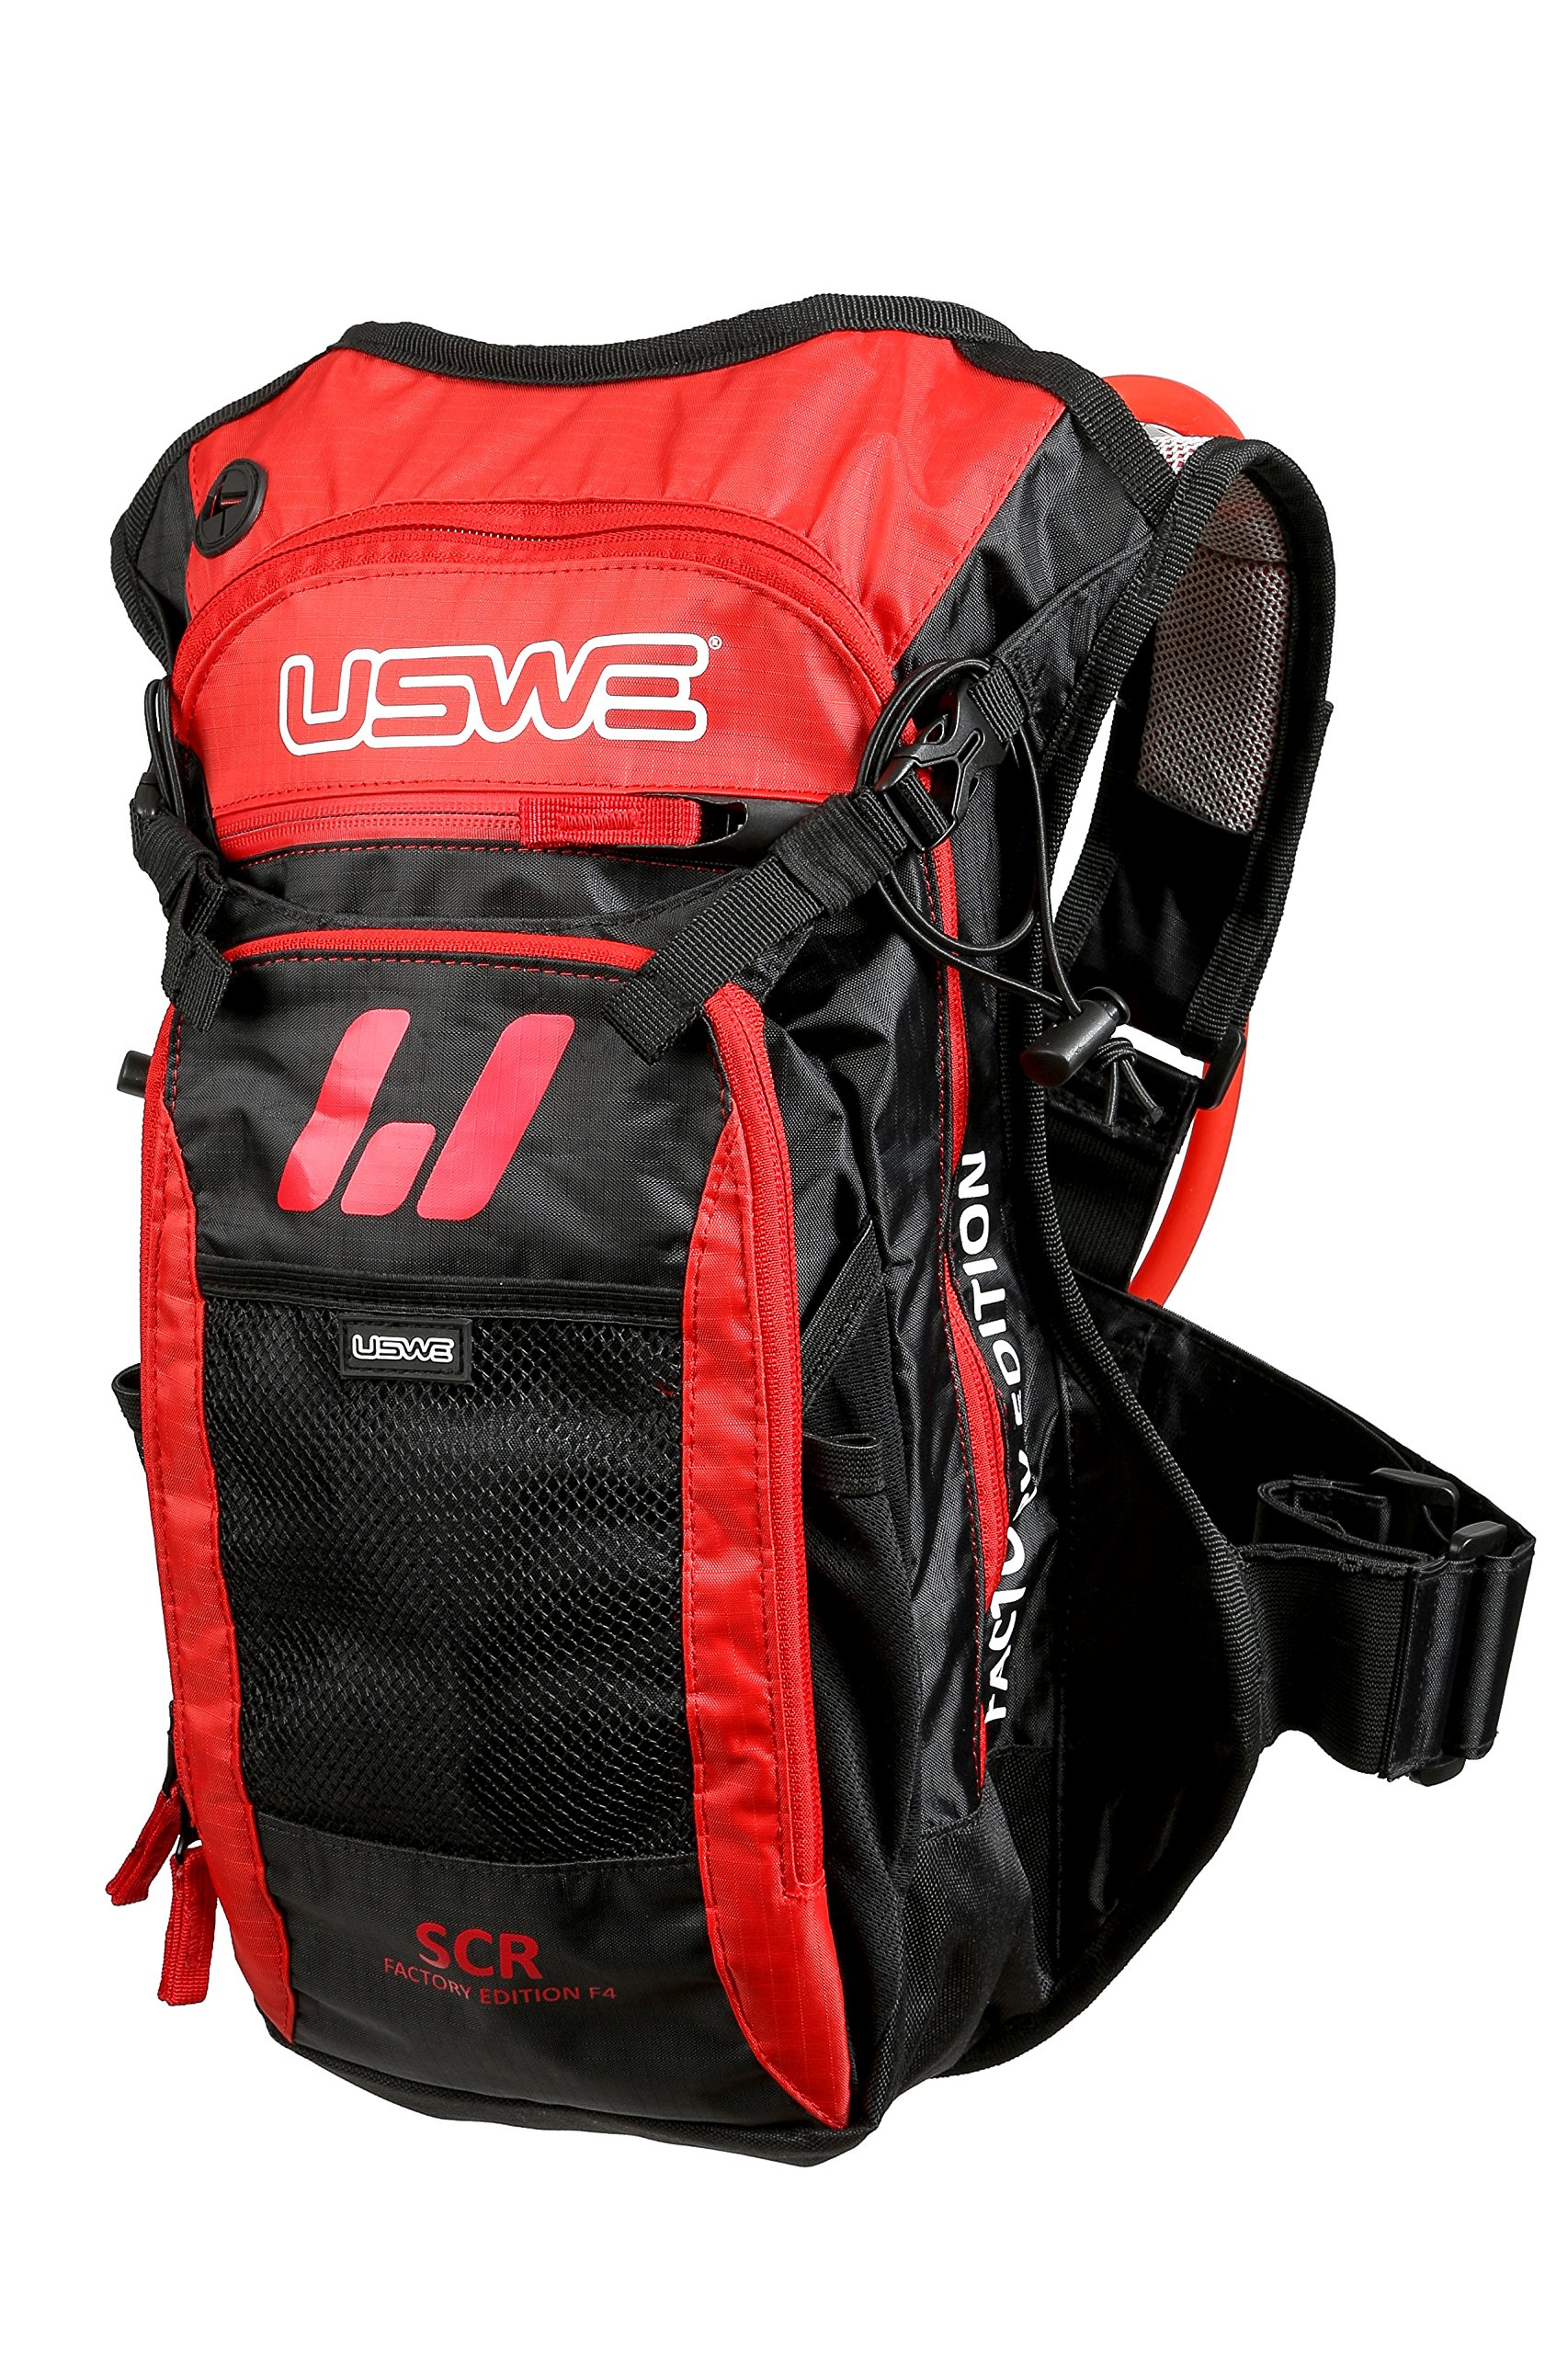 USWE 201210 F4 Hydration Pack With 3L Shape-N-Shift Hydration by USWE